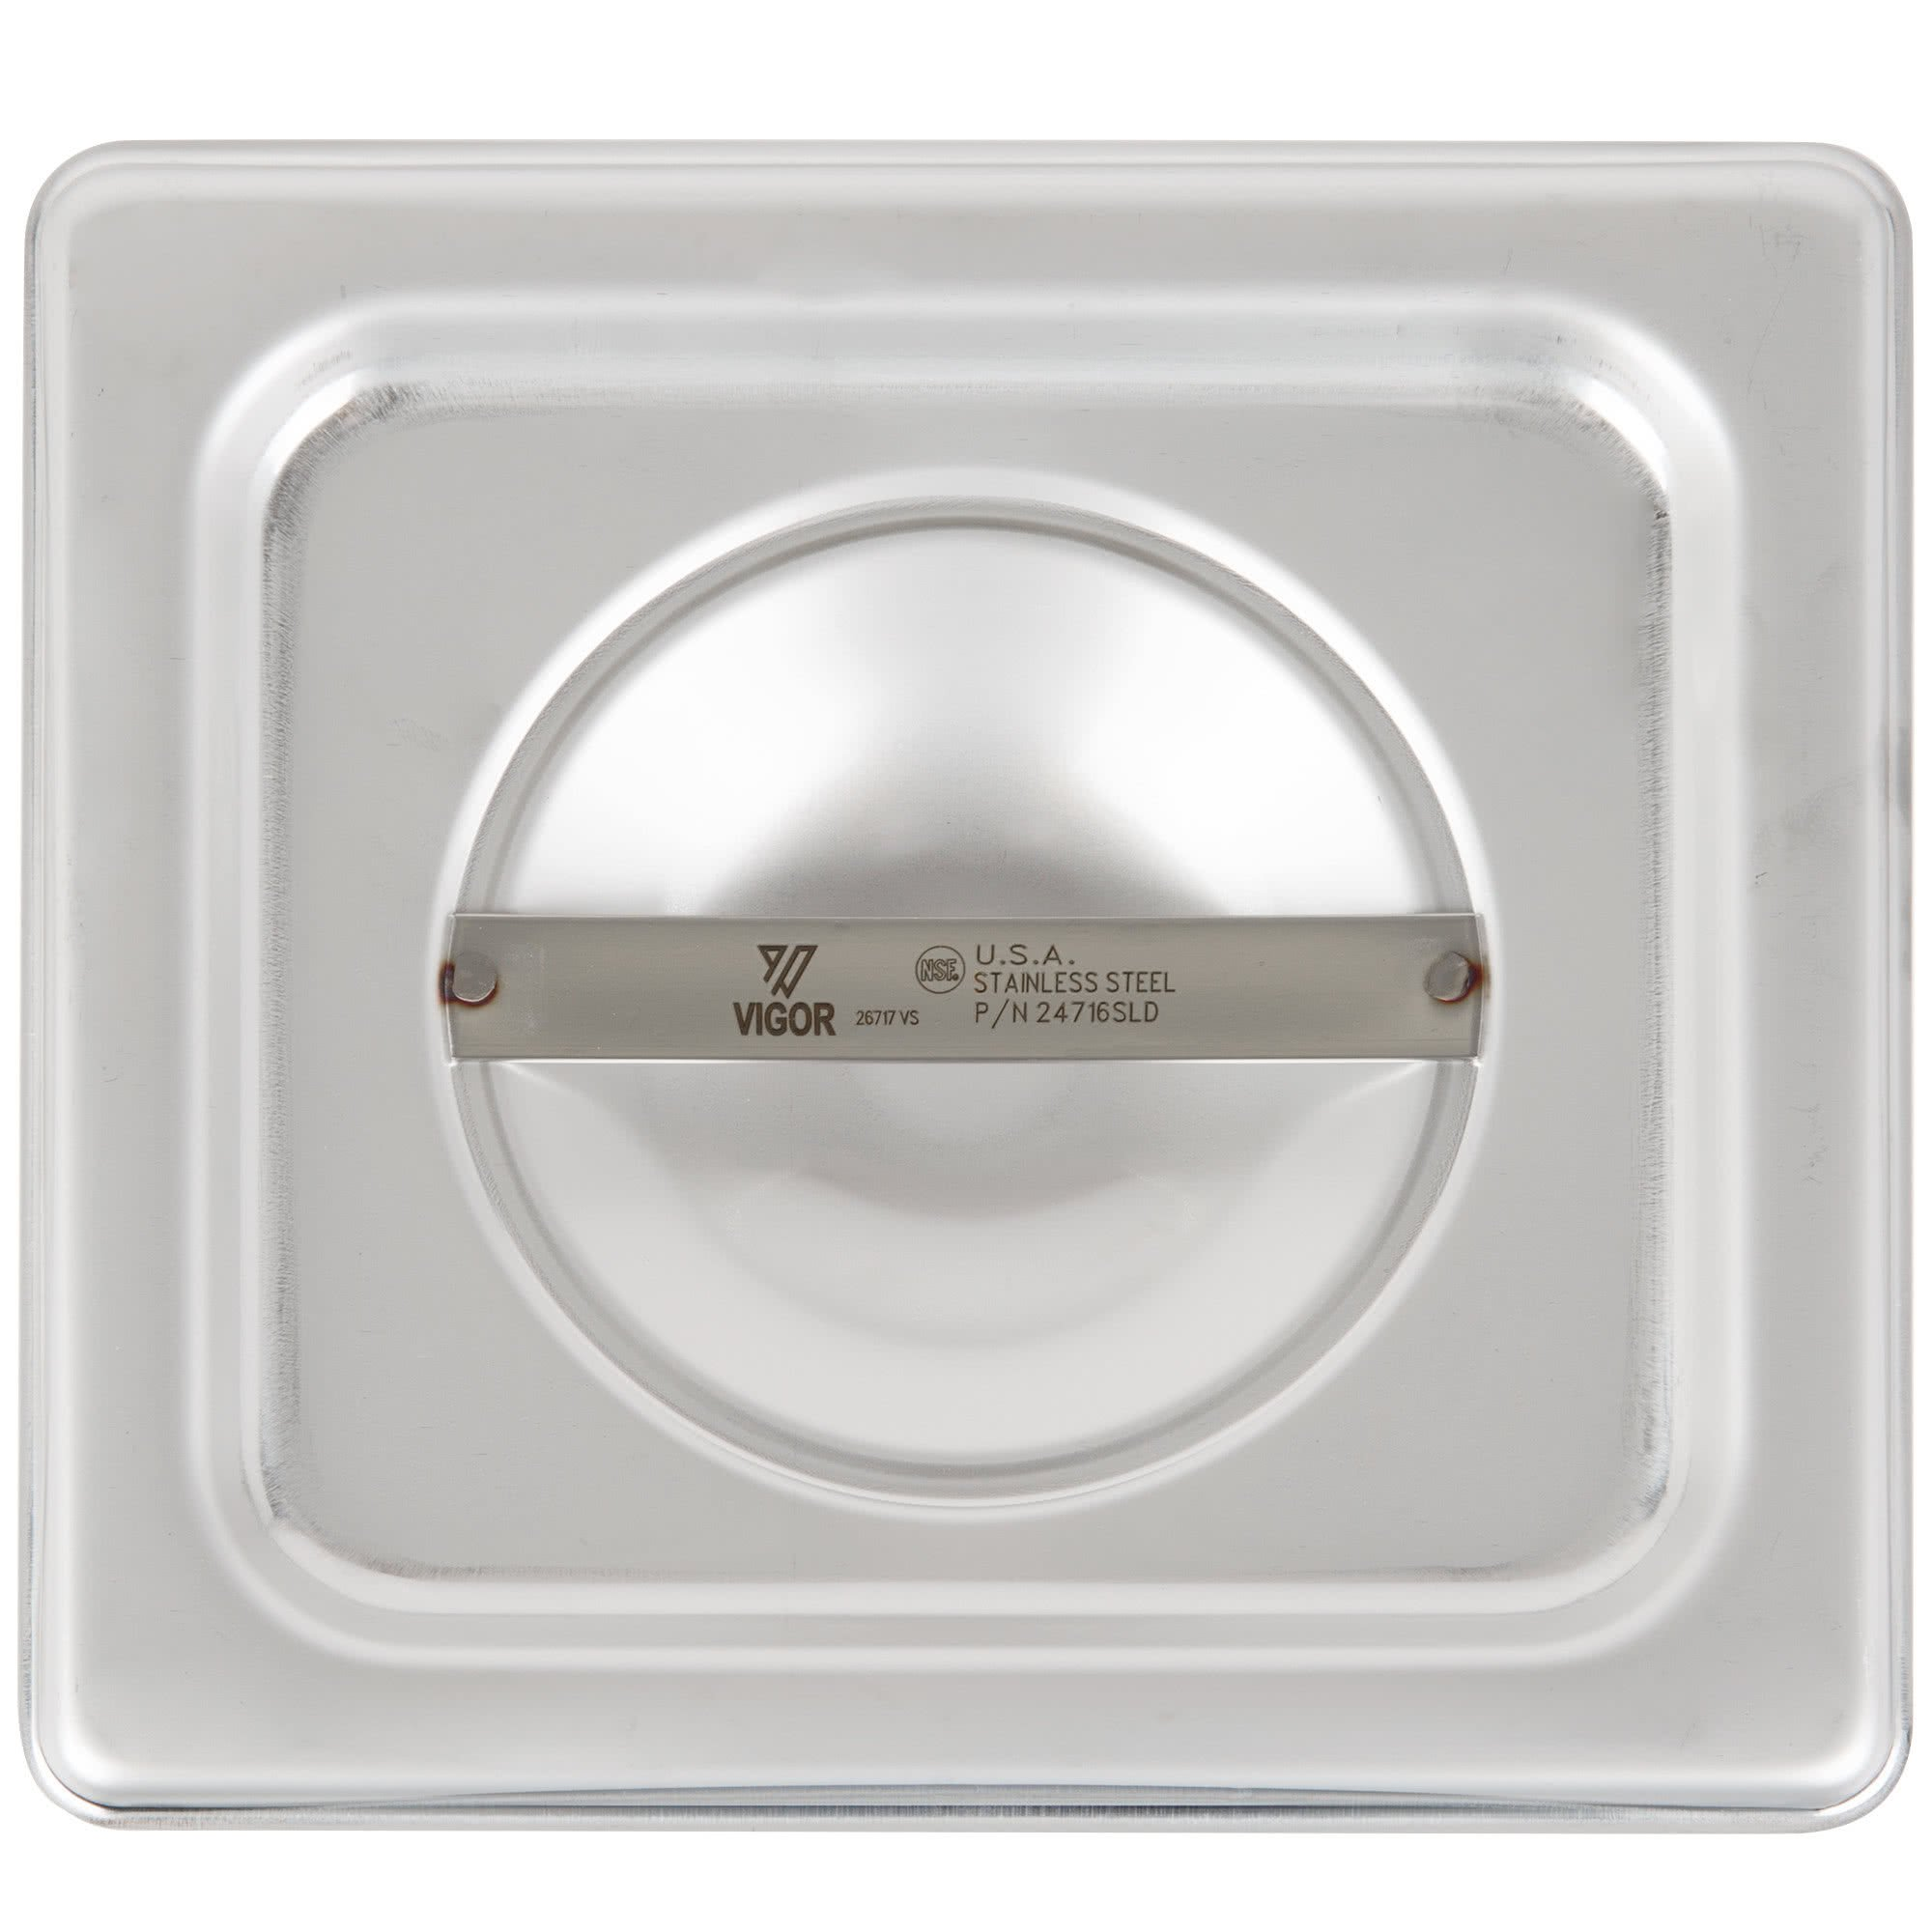 TableTop King 1/6 Size Solid Stainless Steel Steam Table / Hotel Pan Cover